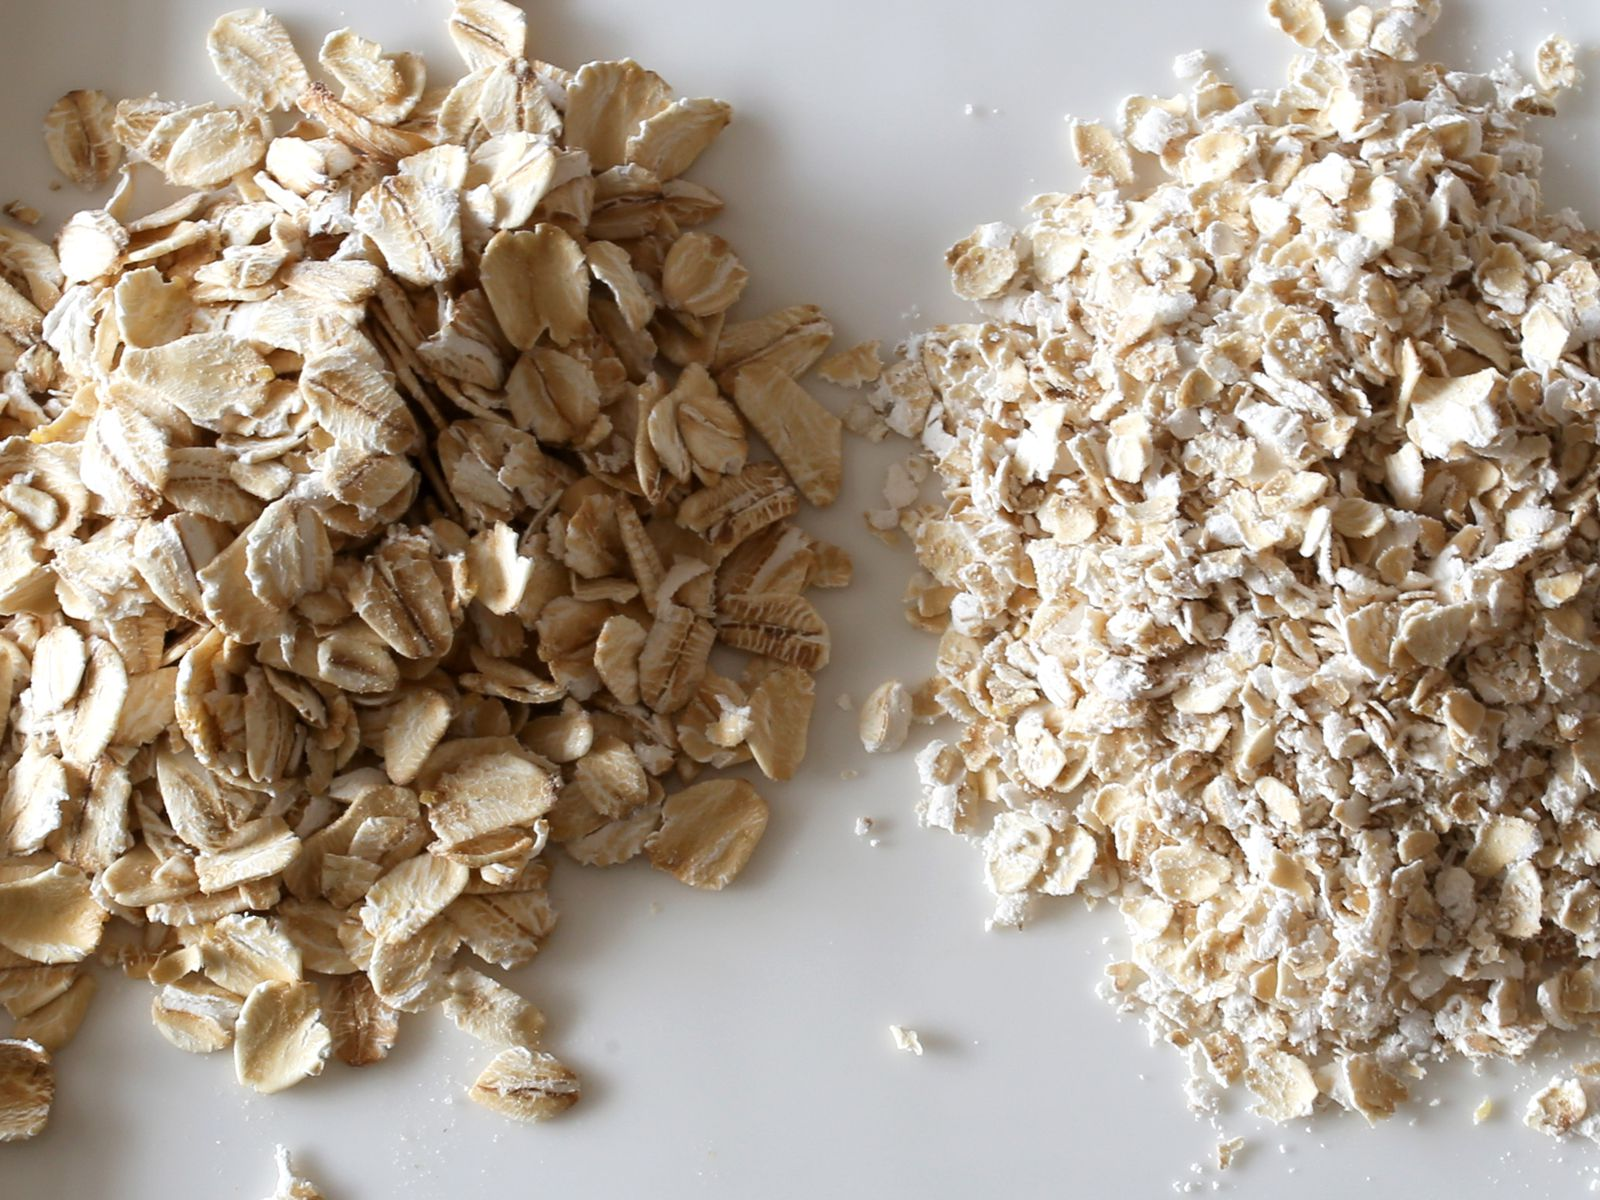 Differences Between Rolled, Steel-Cut, and Instant Oats